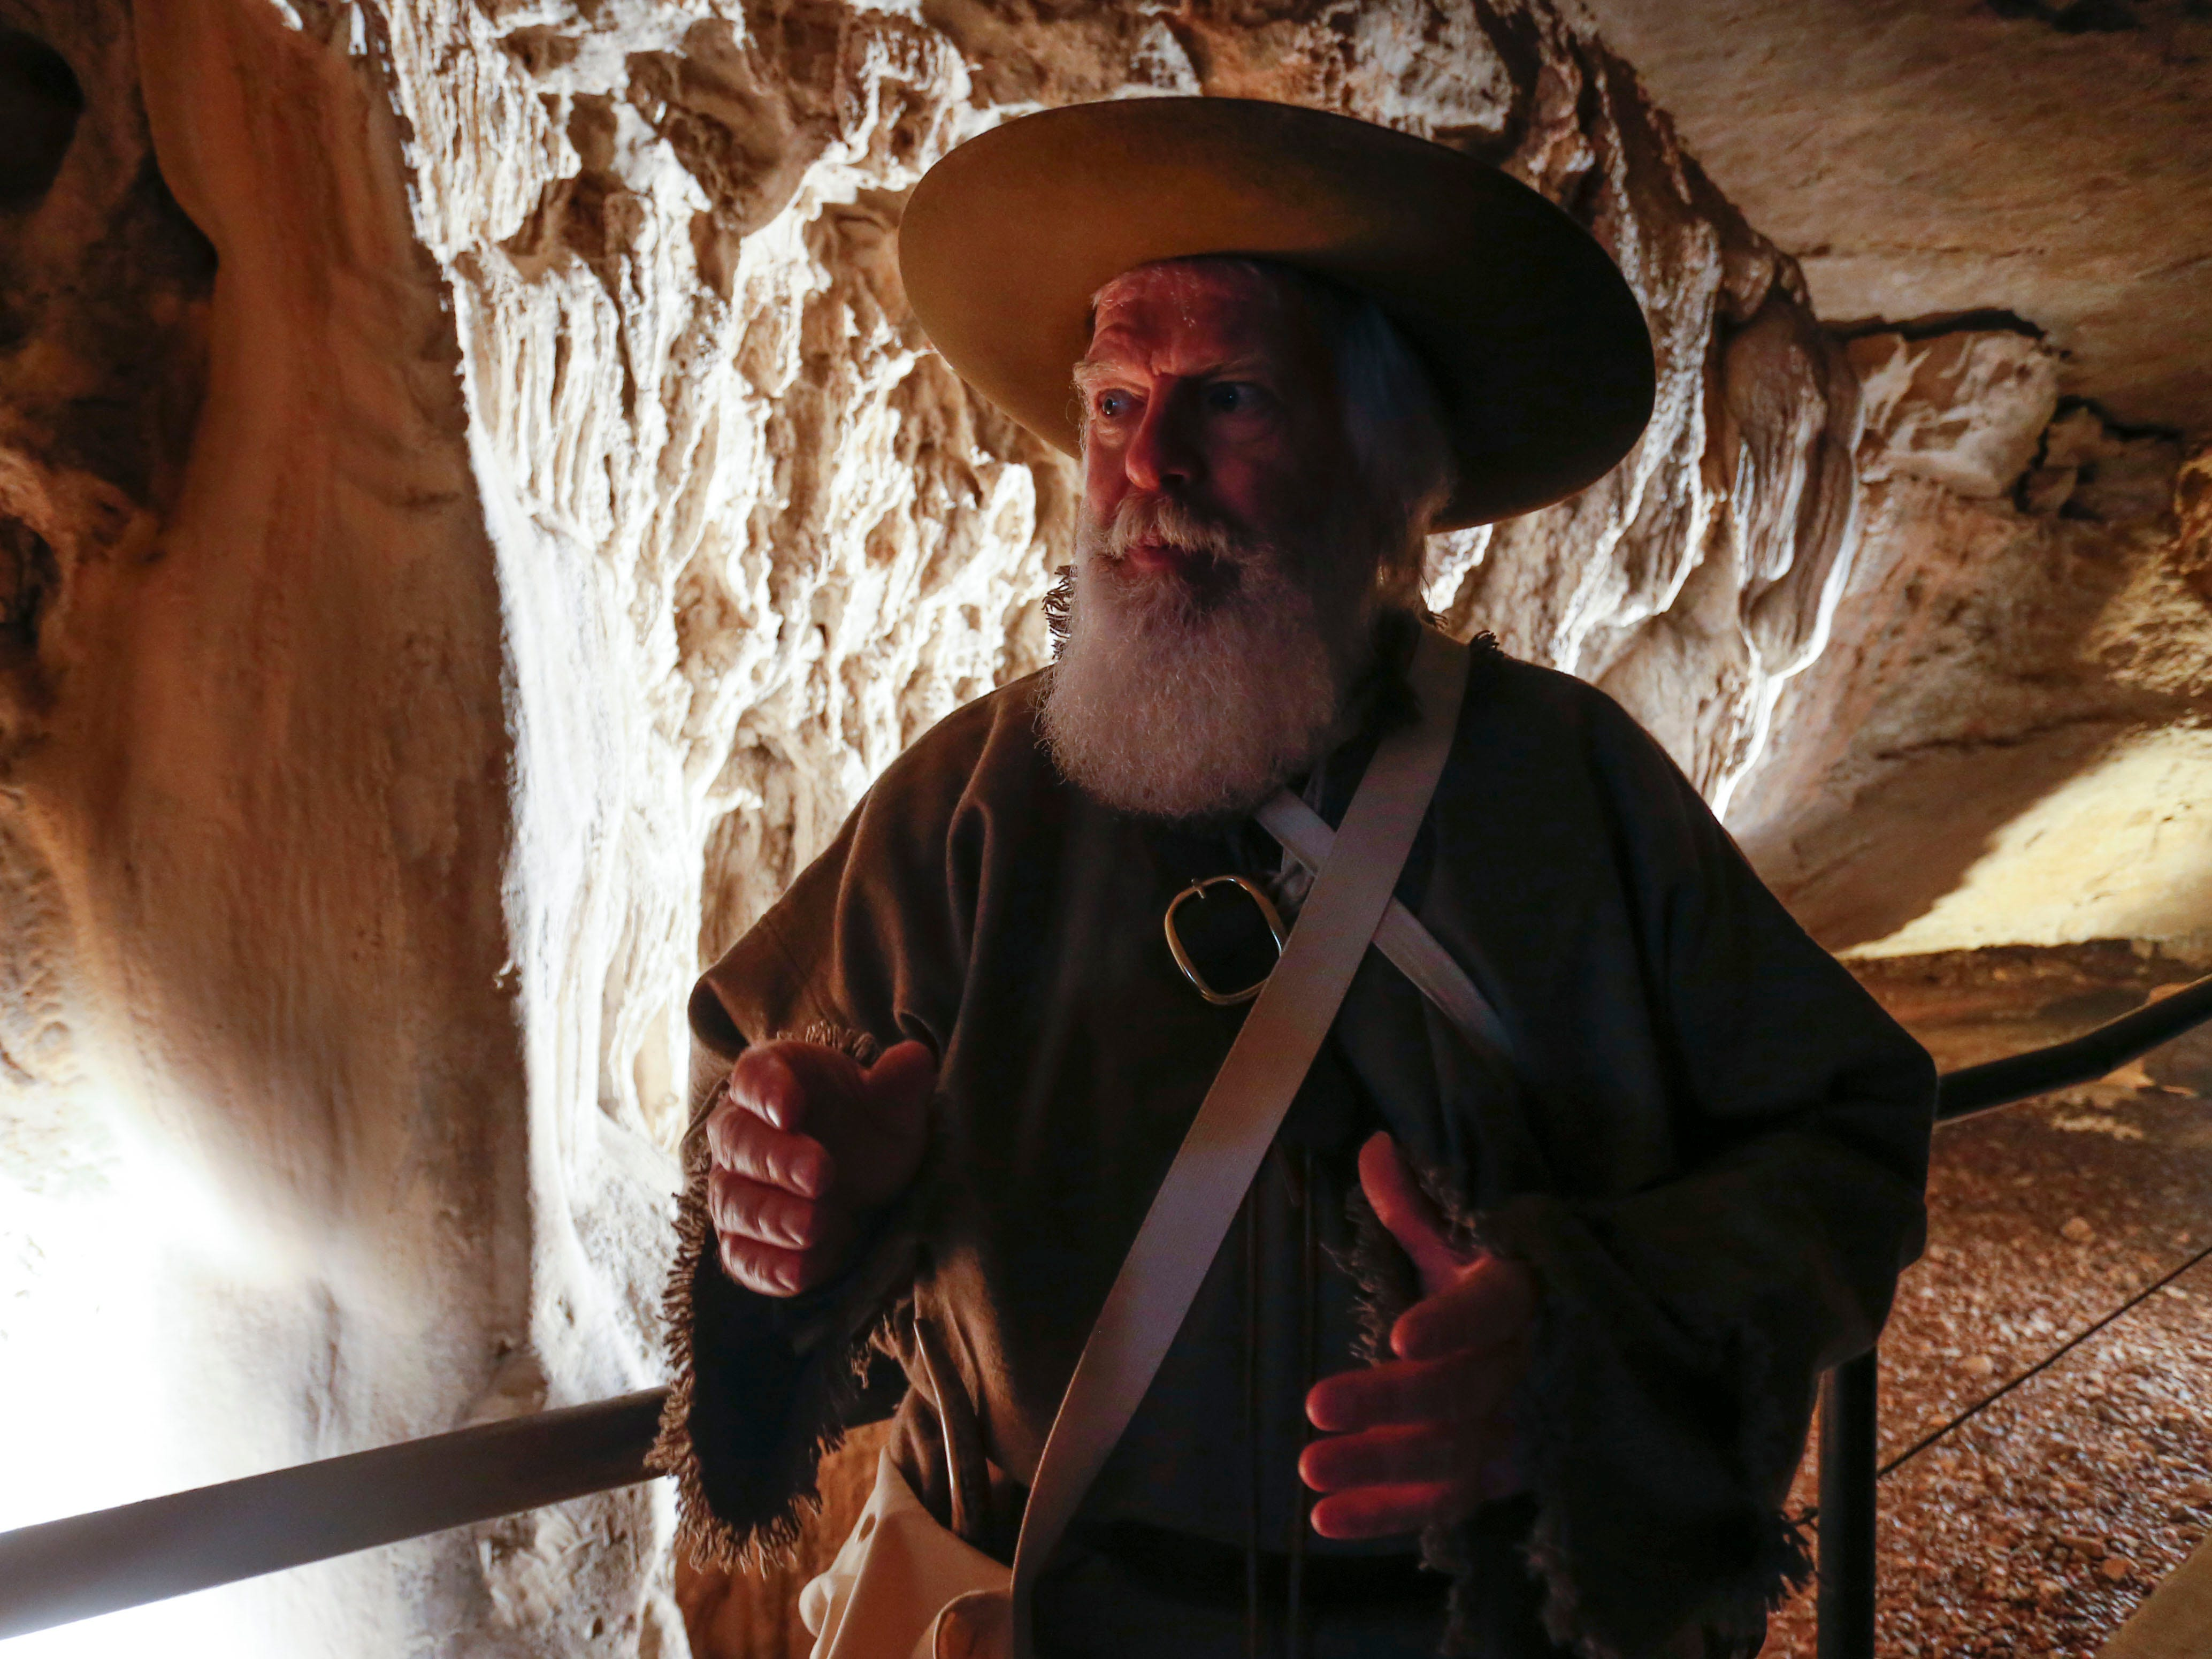 Rick Mansfield talks about recreating Henry Rowe Schoolcraft's 900-mile trek through the Ozarks at Smallin Civil War Cave on Wednesday, Jan. 2, 2019, almost 200 years to the day that Schoolcraft visited the cave.